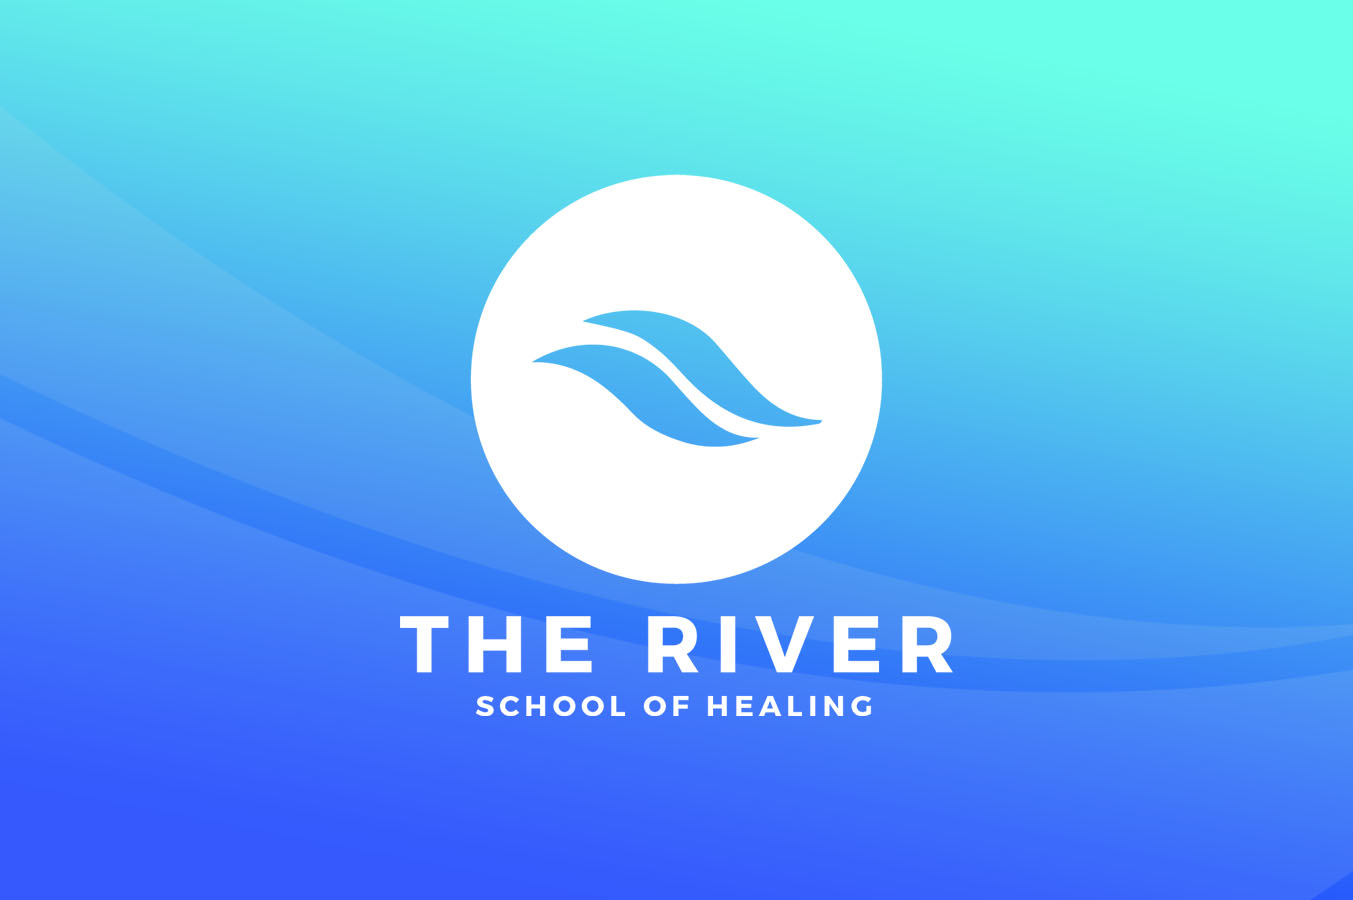 The River School of Healing